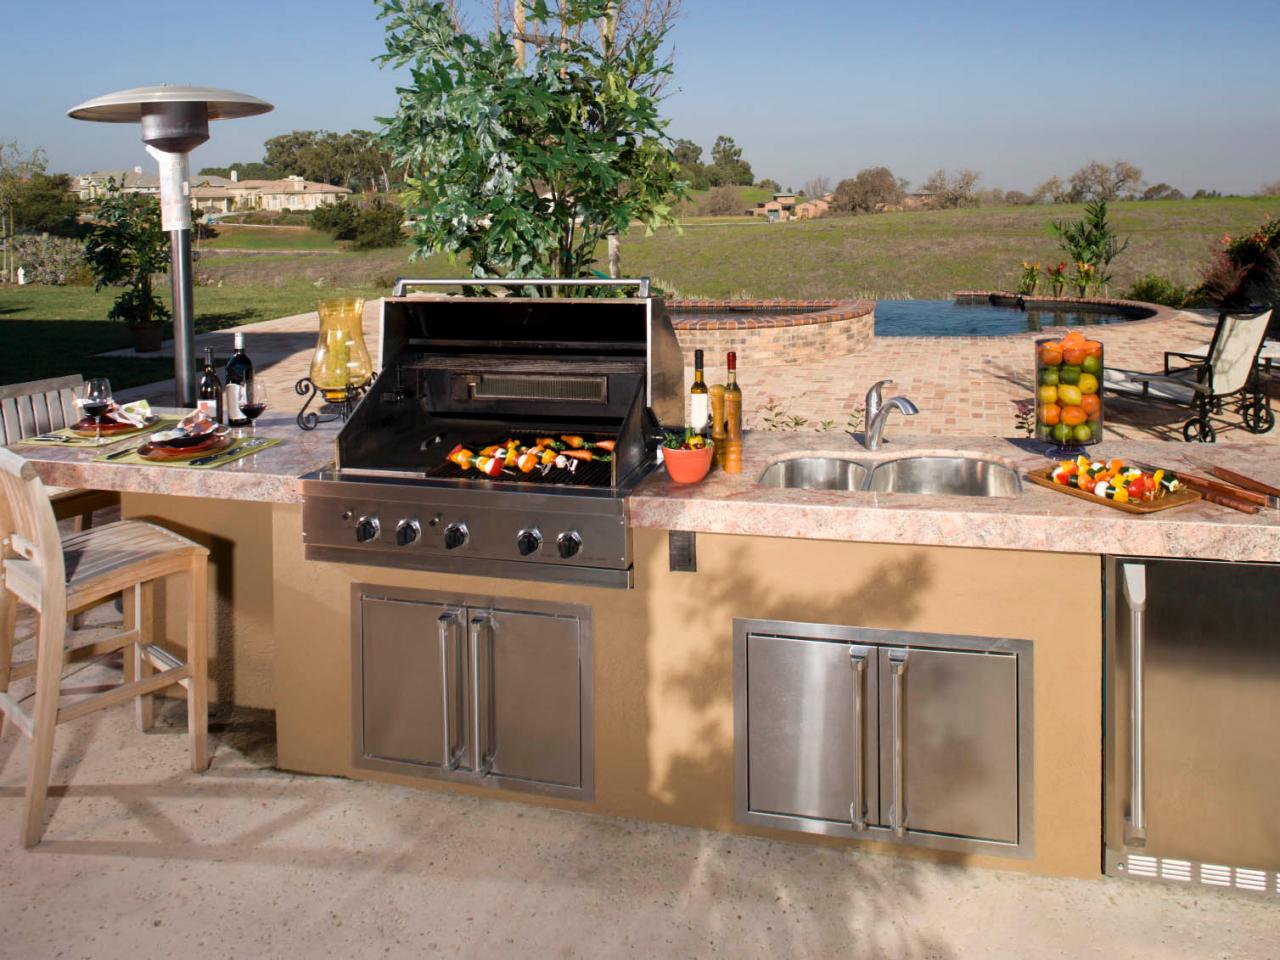 Outdoor Grill Design Ideas 47 outdoor kitchen designs and ideas Outdoor Kitchen Design Ideas